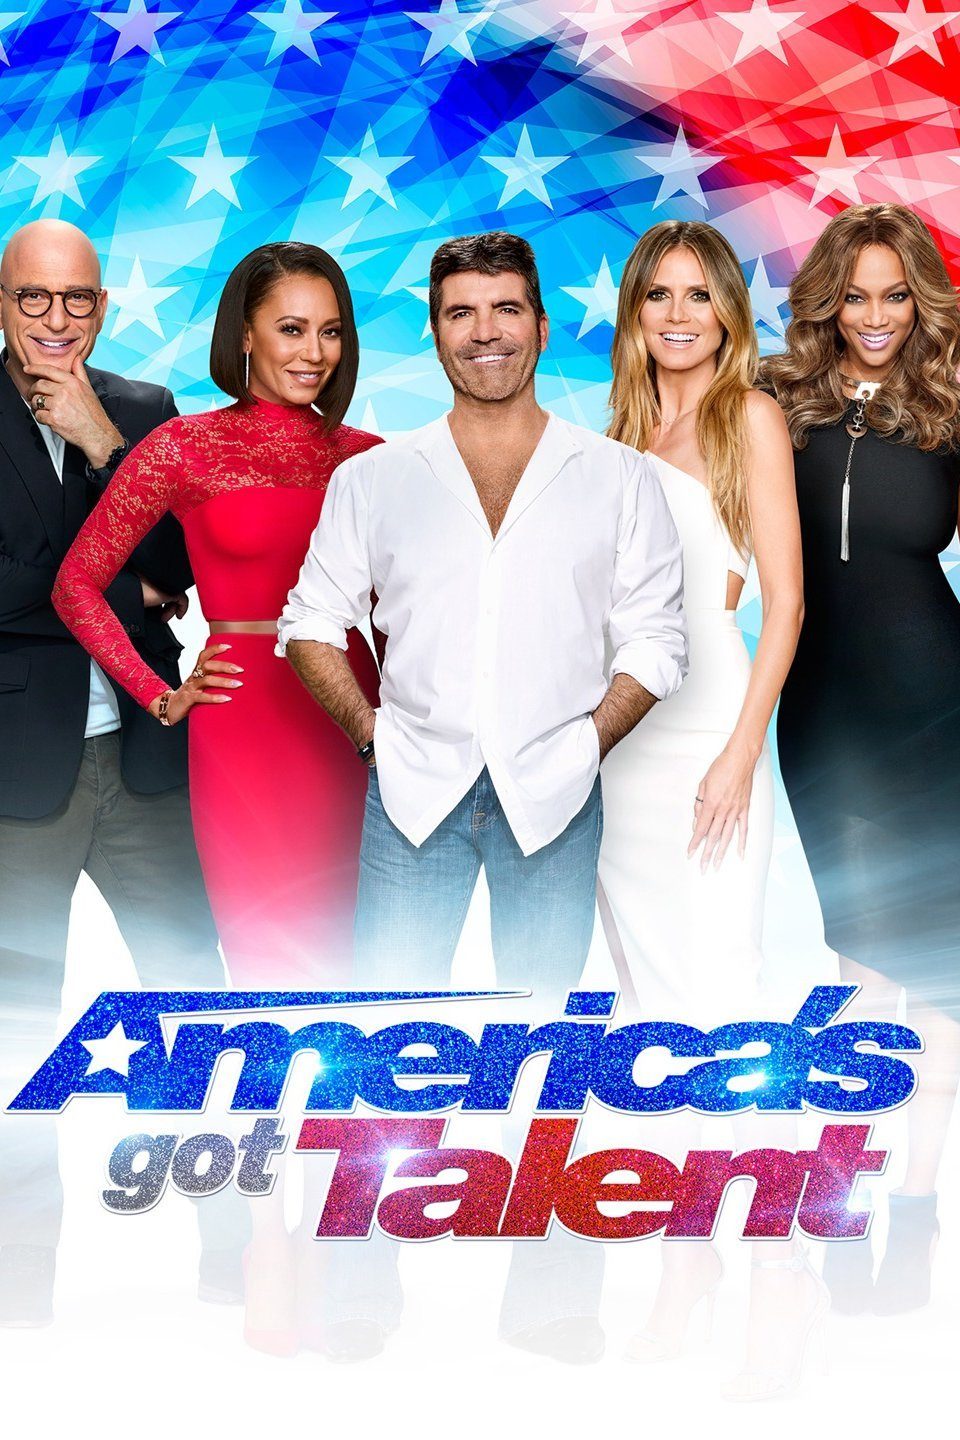 America's Got Talent Season 12 Episode 4 Download 480p HDTV 570MB